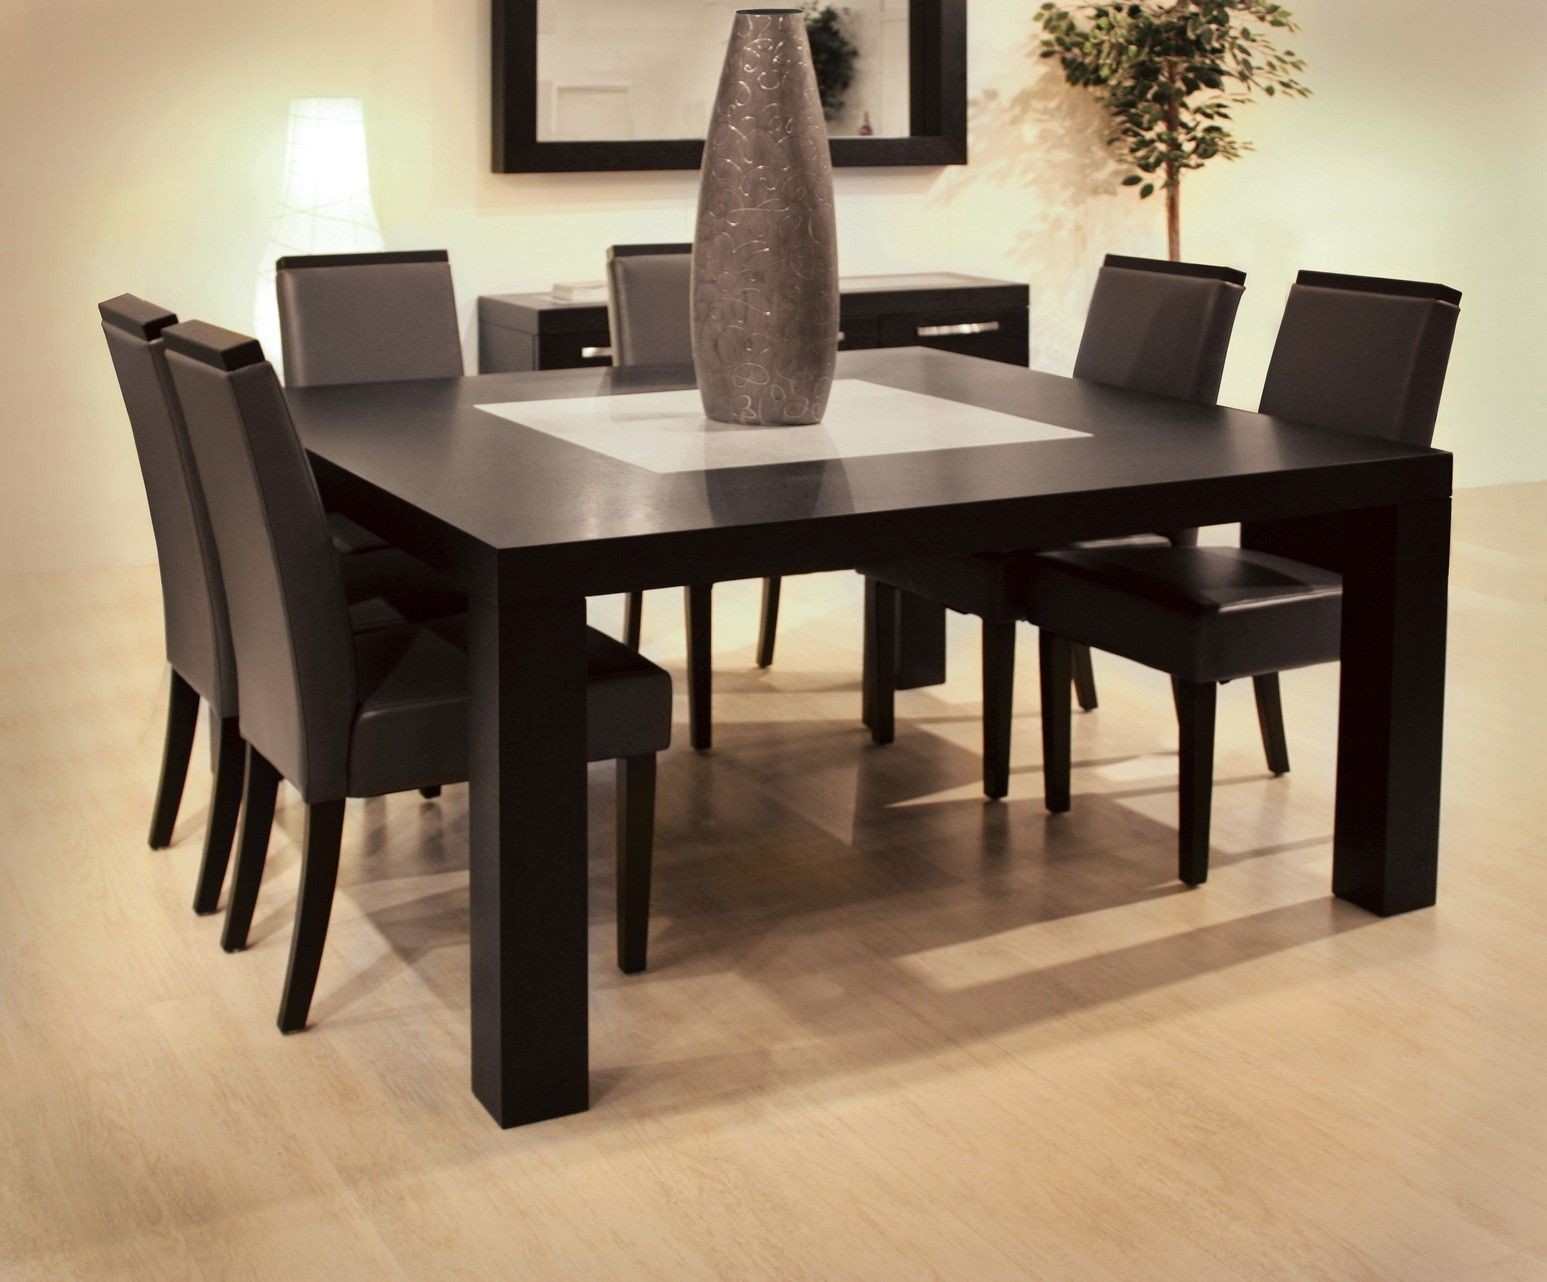 dining table sets wood modern | dining room | pinterest | square